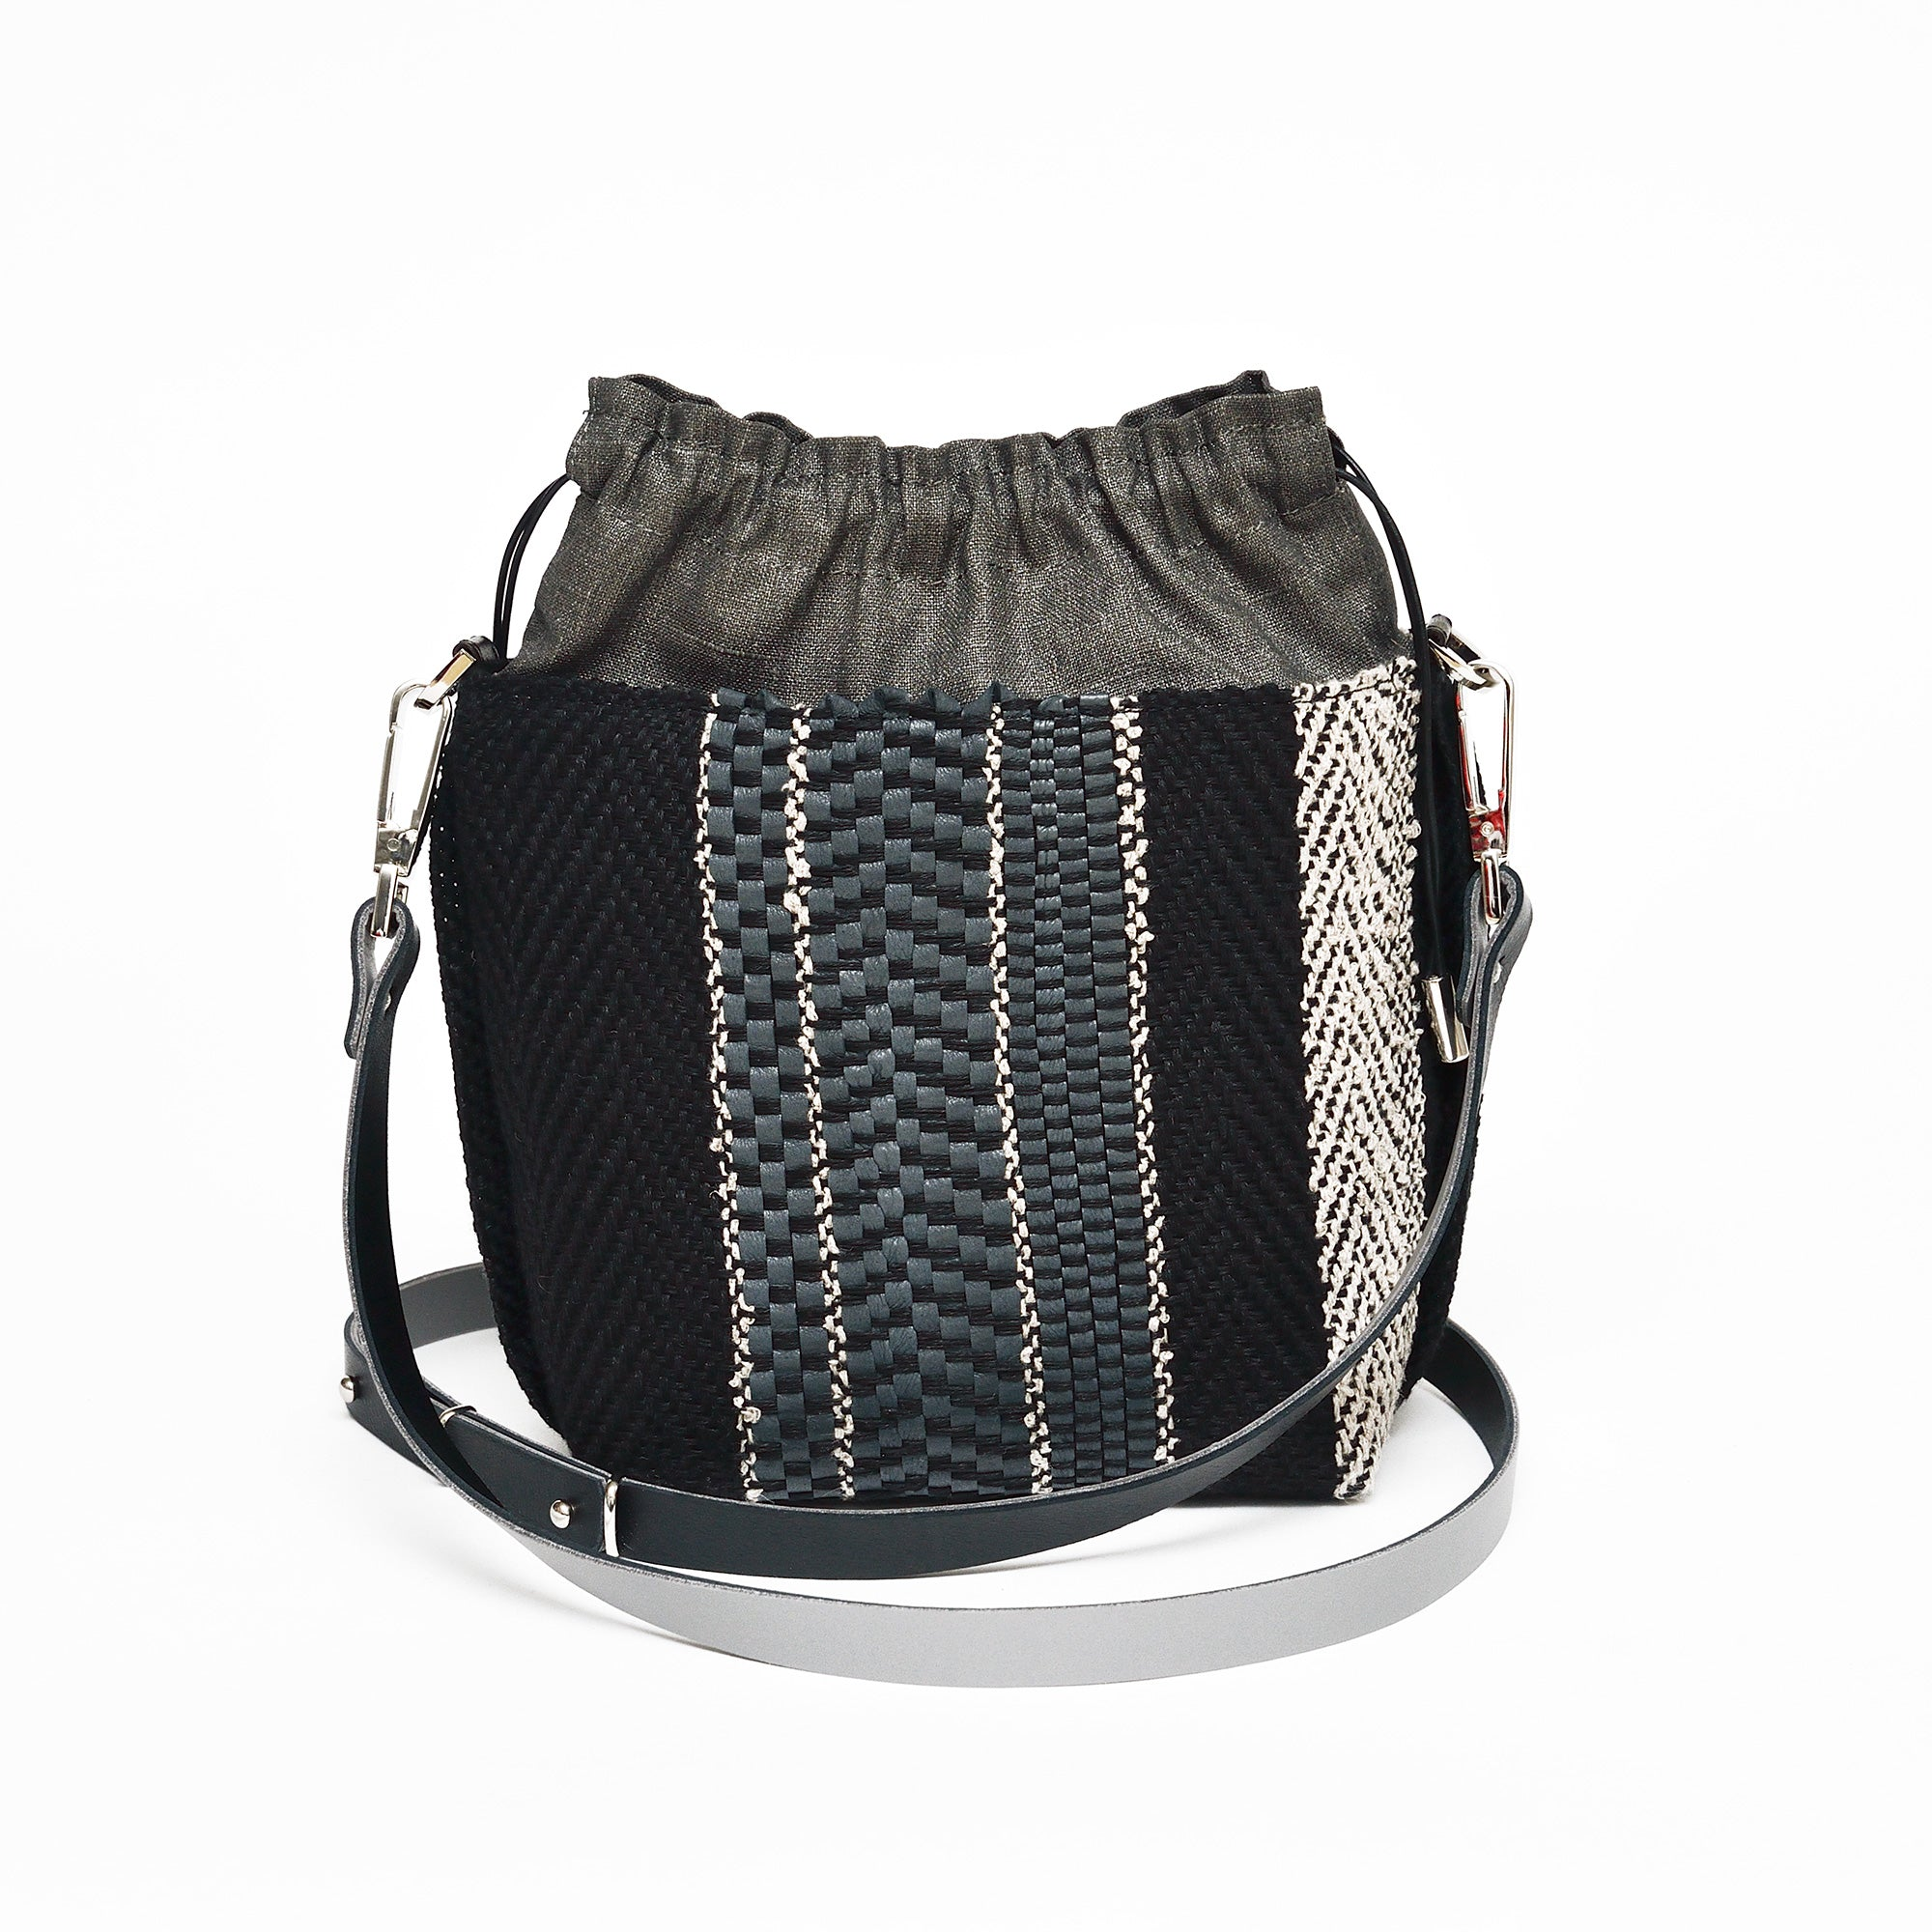 Handwoven Bag AUSTĖ #40 graphite grey leather and linen